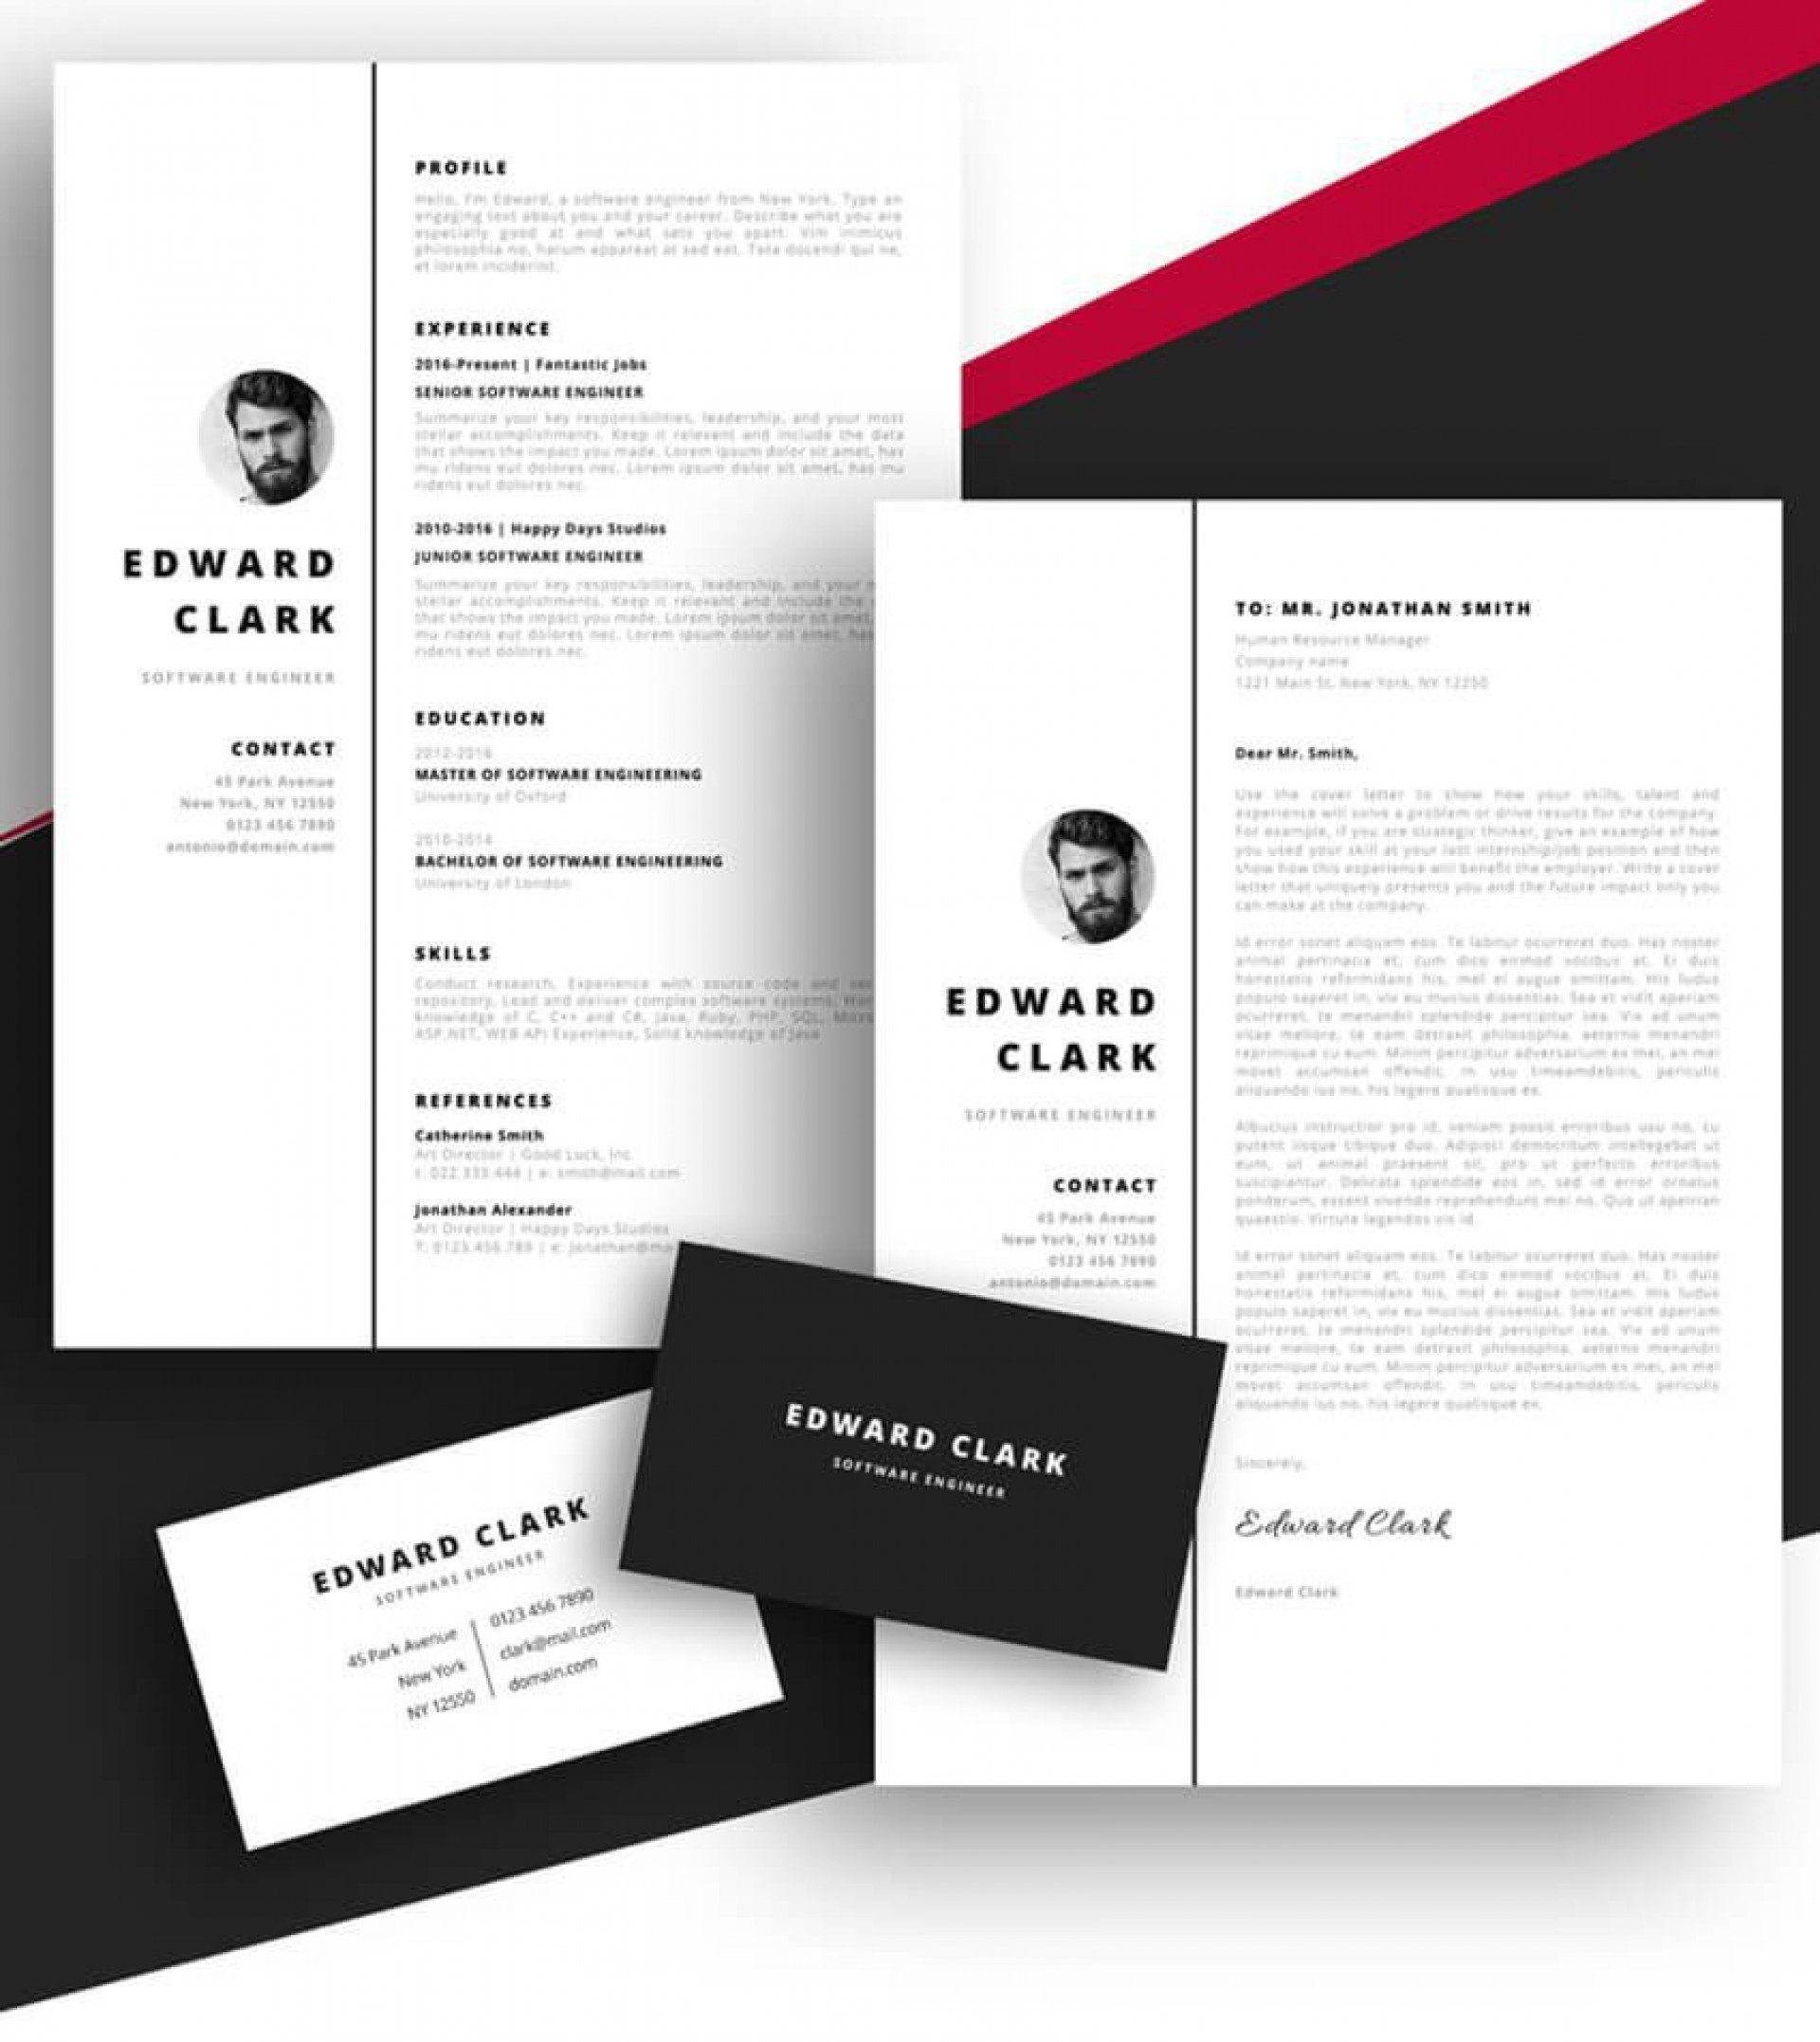 006 Imposing Download Free Resume Template For Mac Page Concept  Pages1920